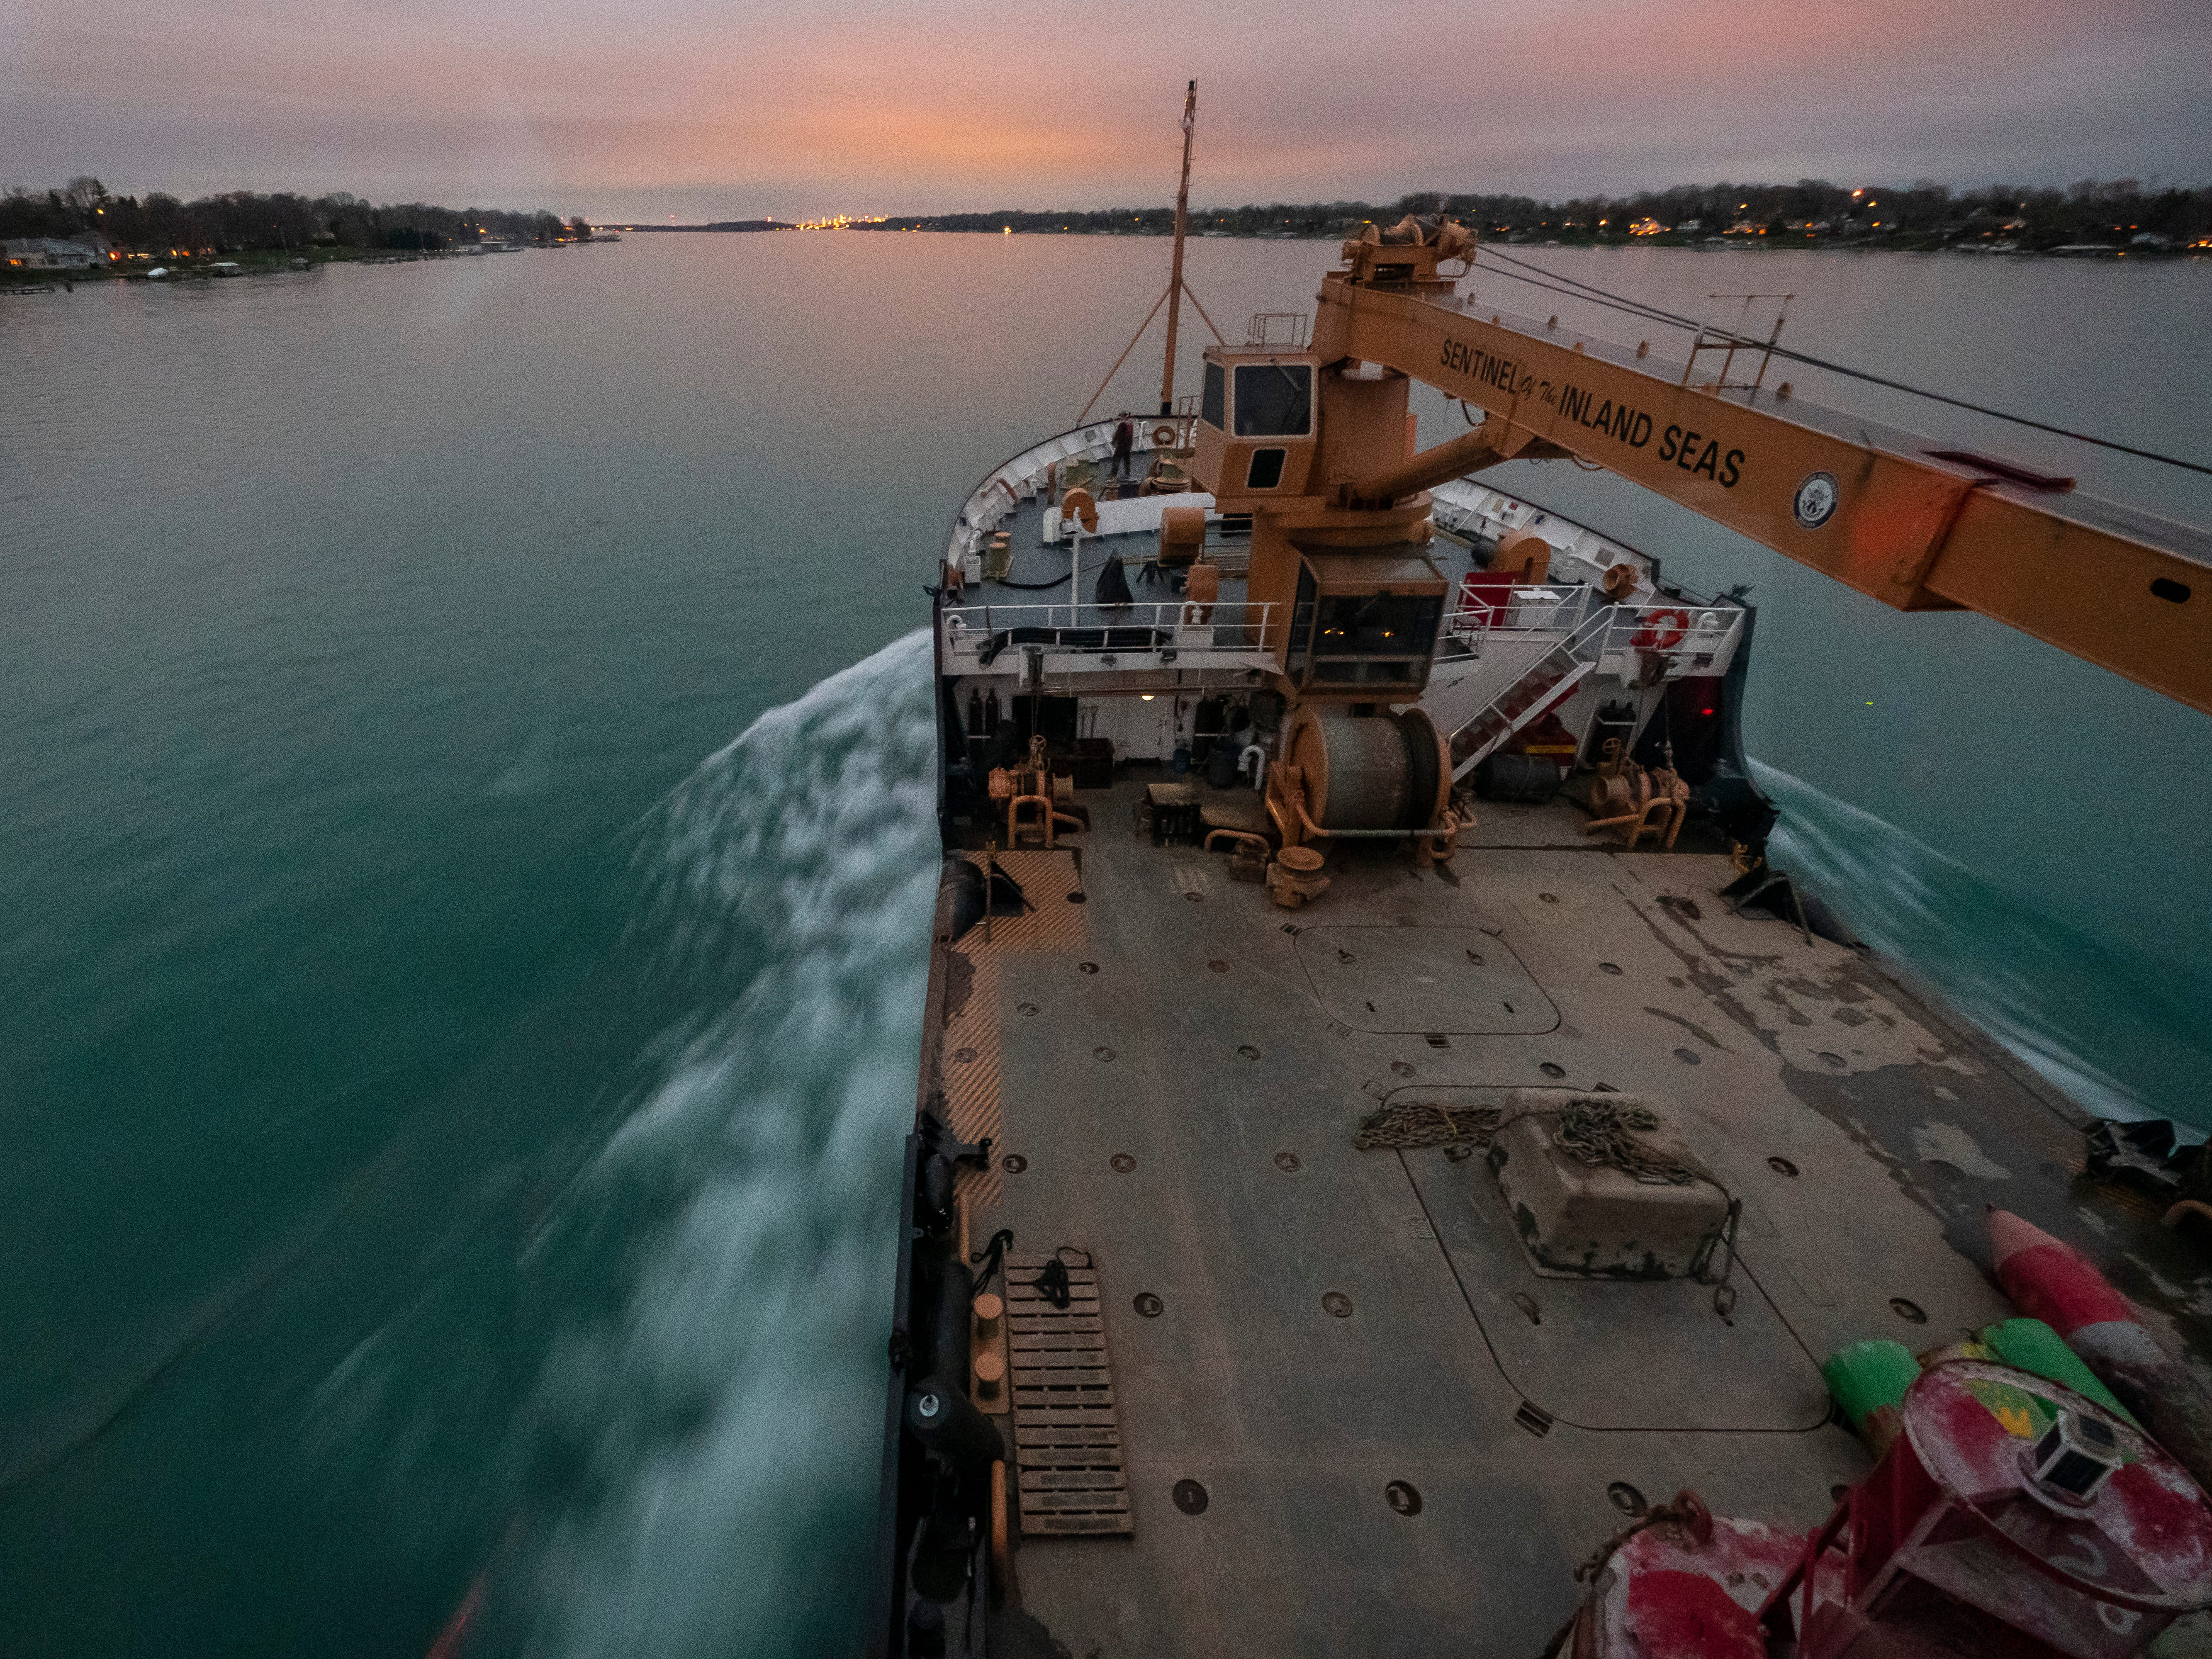 The sun begins to set as the USCGC Hollyhock is upbound on the St. Clair River Thursday, April 25, 2019, towards Blue Water Aggregates in Marysville. The ship will moor there for the night, and in the morning it will be loaded with more buoys before getting underway again.